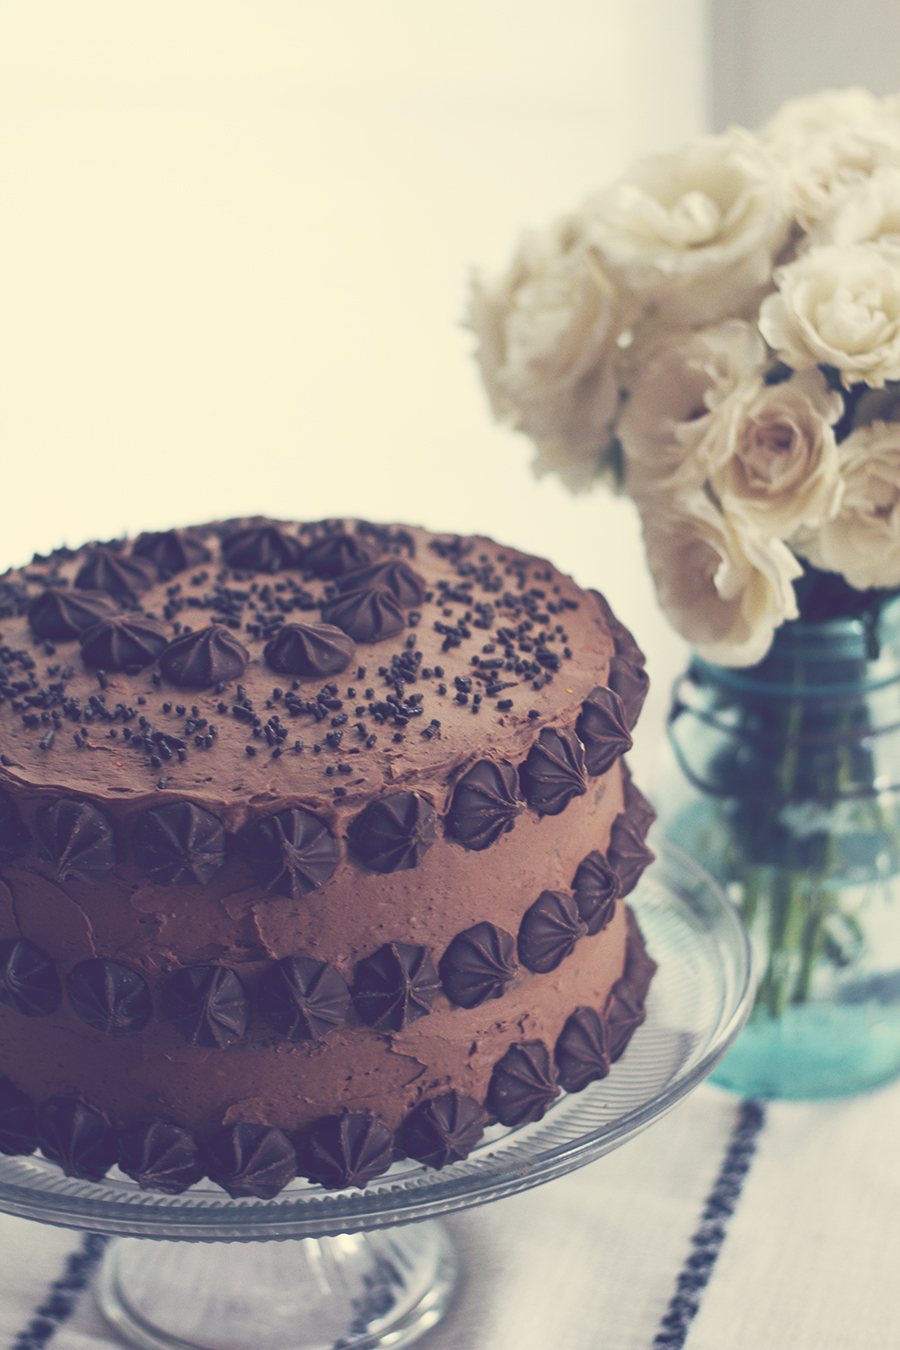 Easy Cake Decorating - Chocolate Cake with Chocolate Frosting and Chocolate Chips!